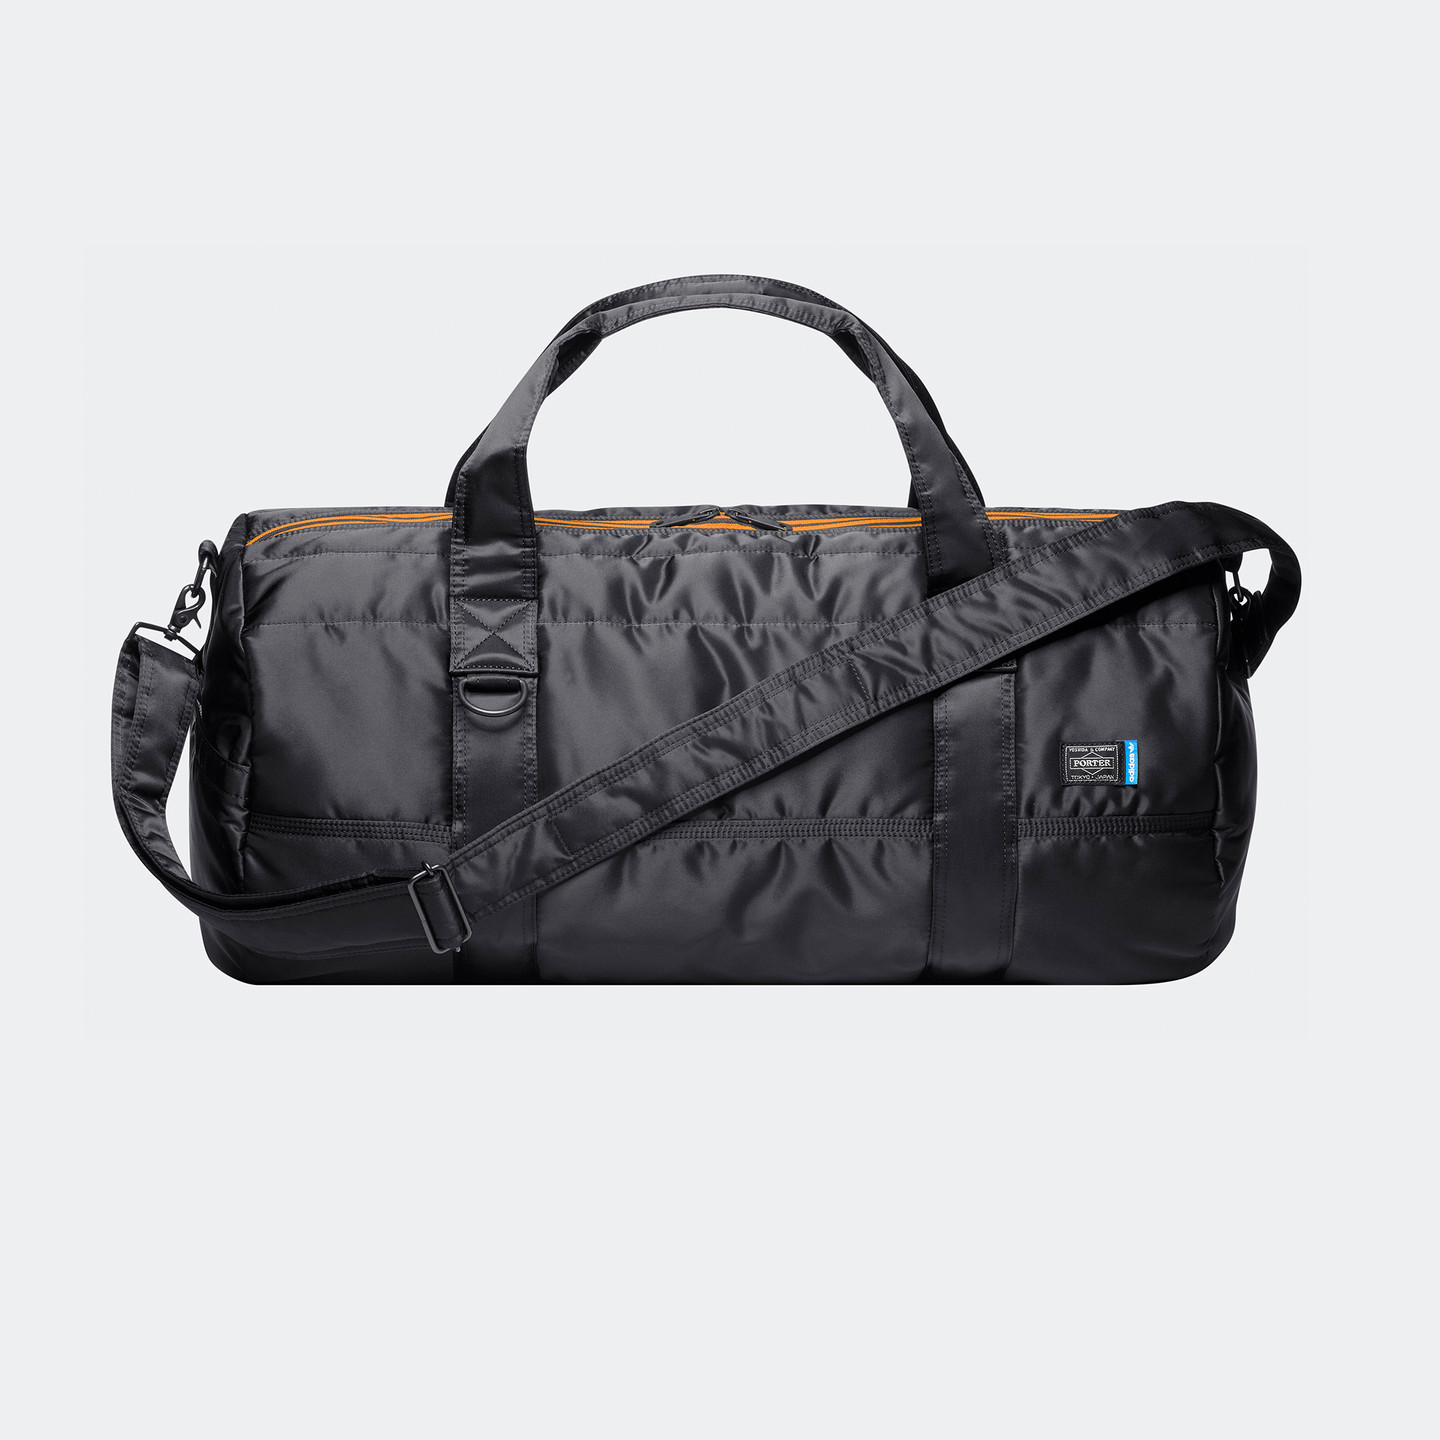 Adidas 2-Way Boston Bag x Porter Core Black / Bright Orange / Blue CJ5749